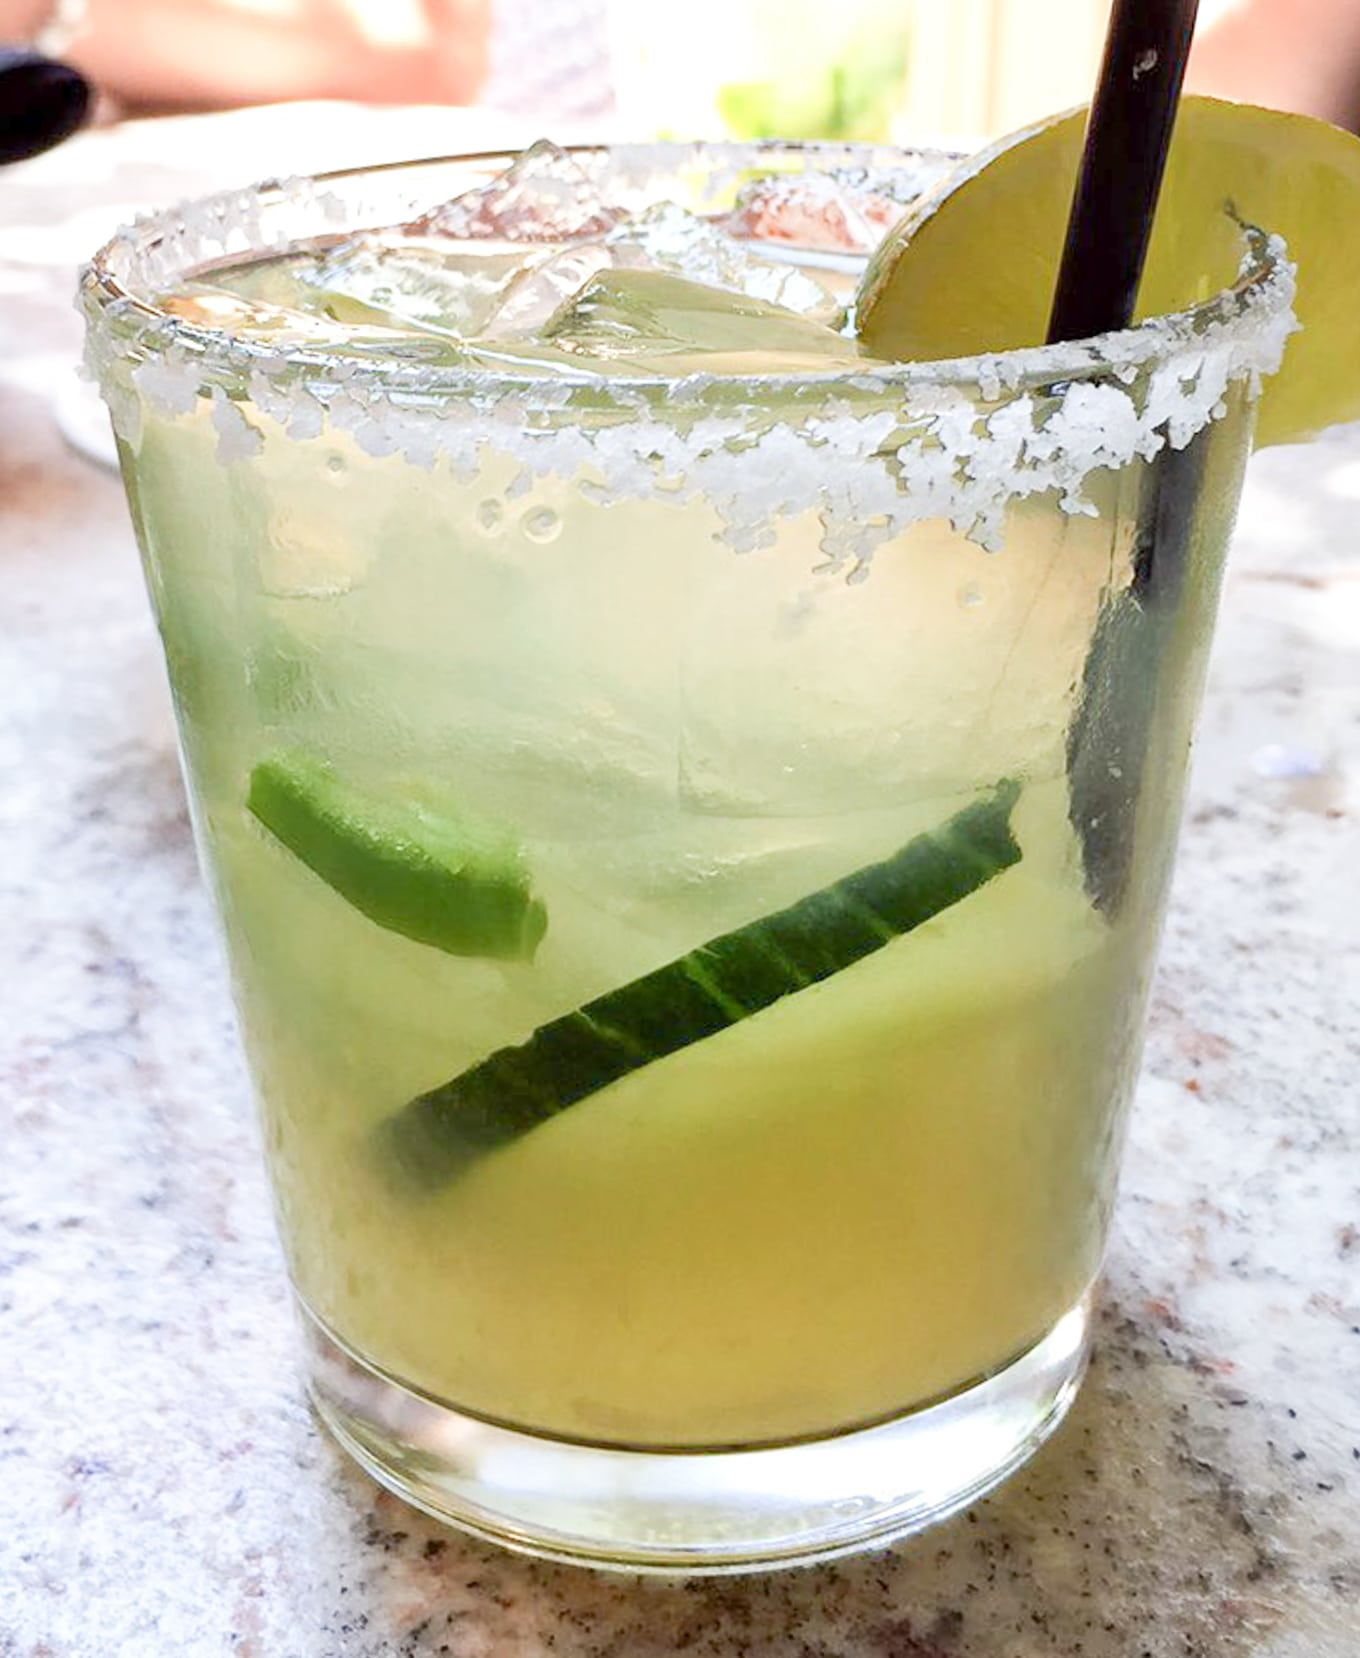 Cucumber Jalapeno Margarita - The Mission Old Town Scottsdale | Lake Shore Lady